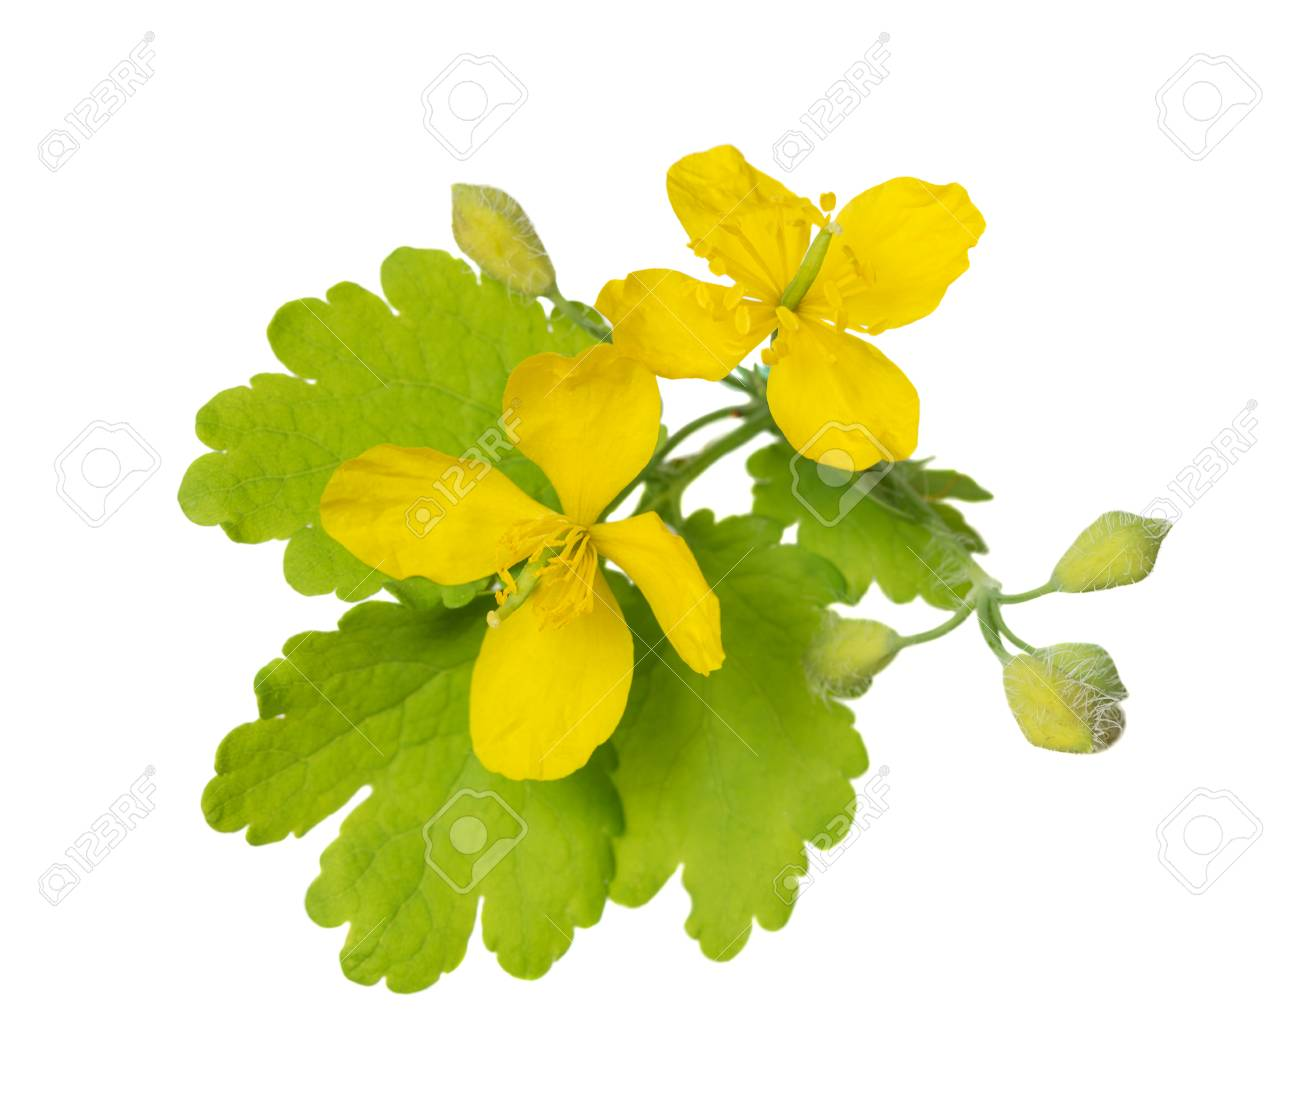 Yellow flowers and green leaves of a medicinal herb celandine stock photo yellow flowers and green leaves of a medicinal herb celandine in may isolated on white background mightylinksfo